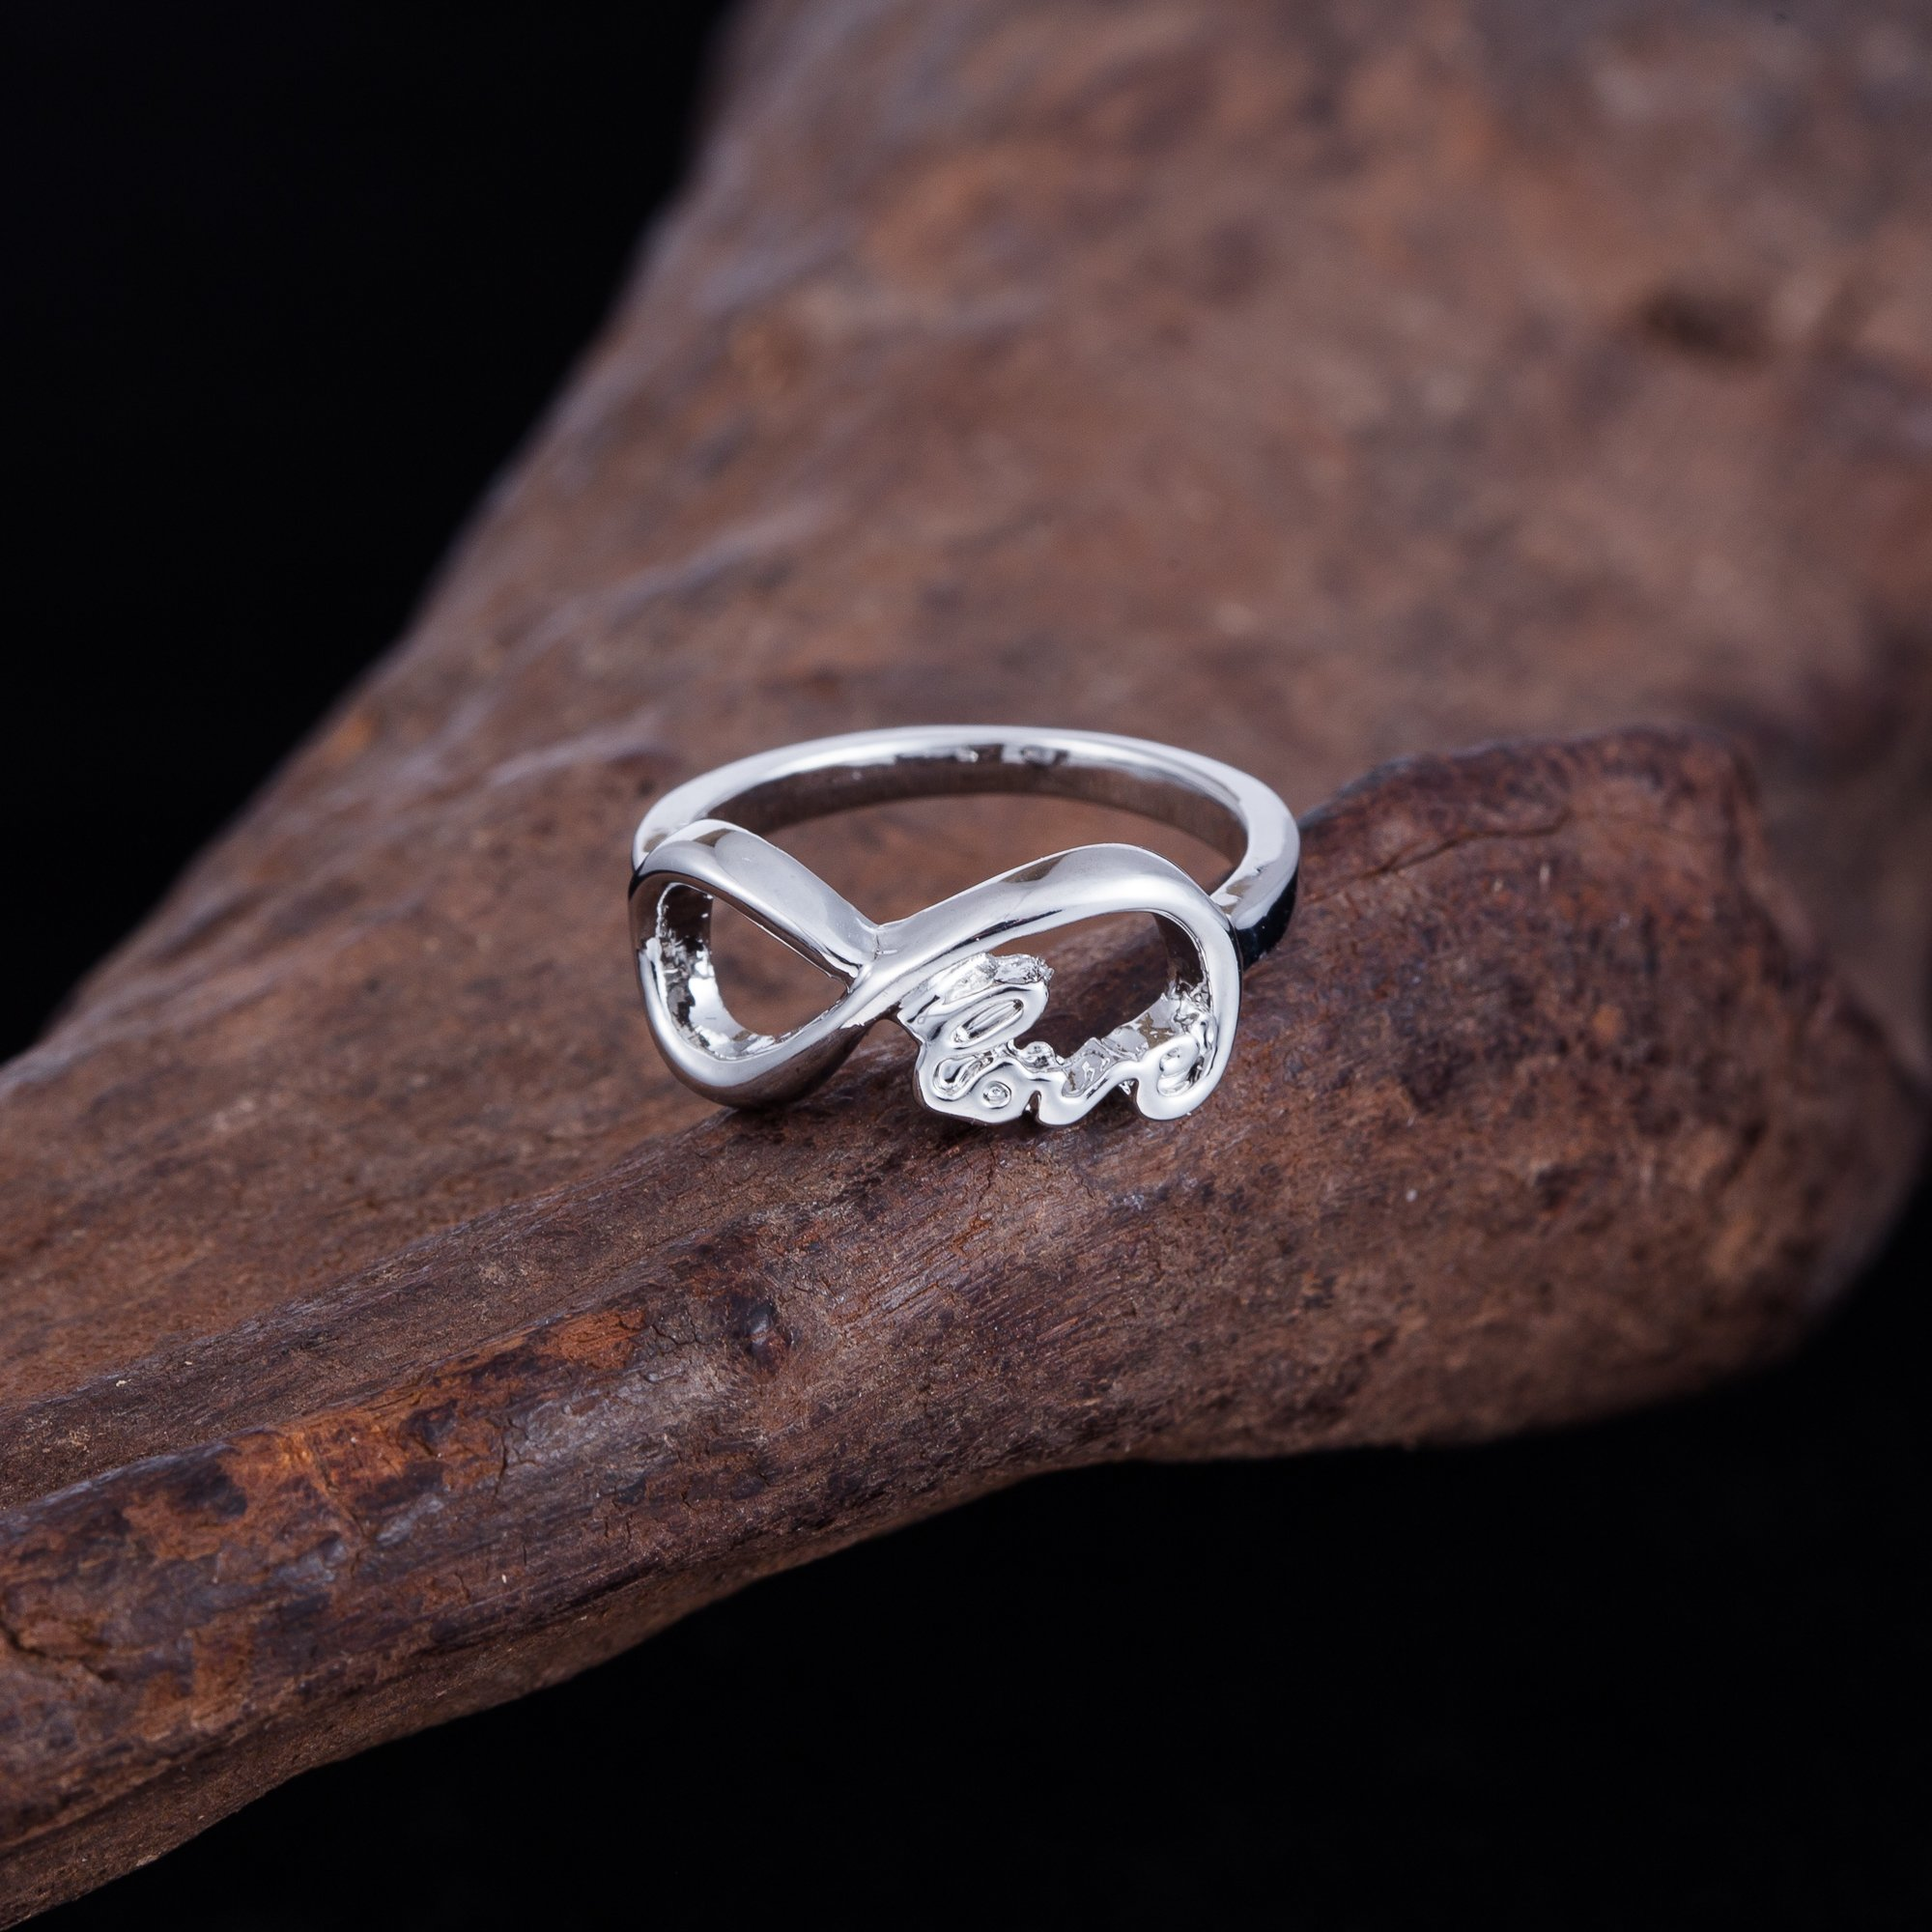 Vintage ''Infinity Love'' Alphabet Pattern Wedding Rropose Ring, Romantic Gift Ring for Lovers by fishhook (Image #2)